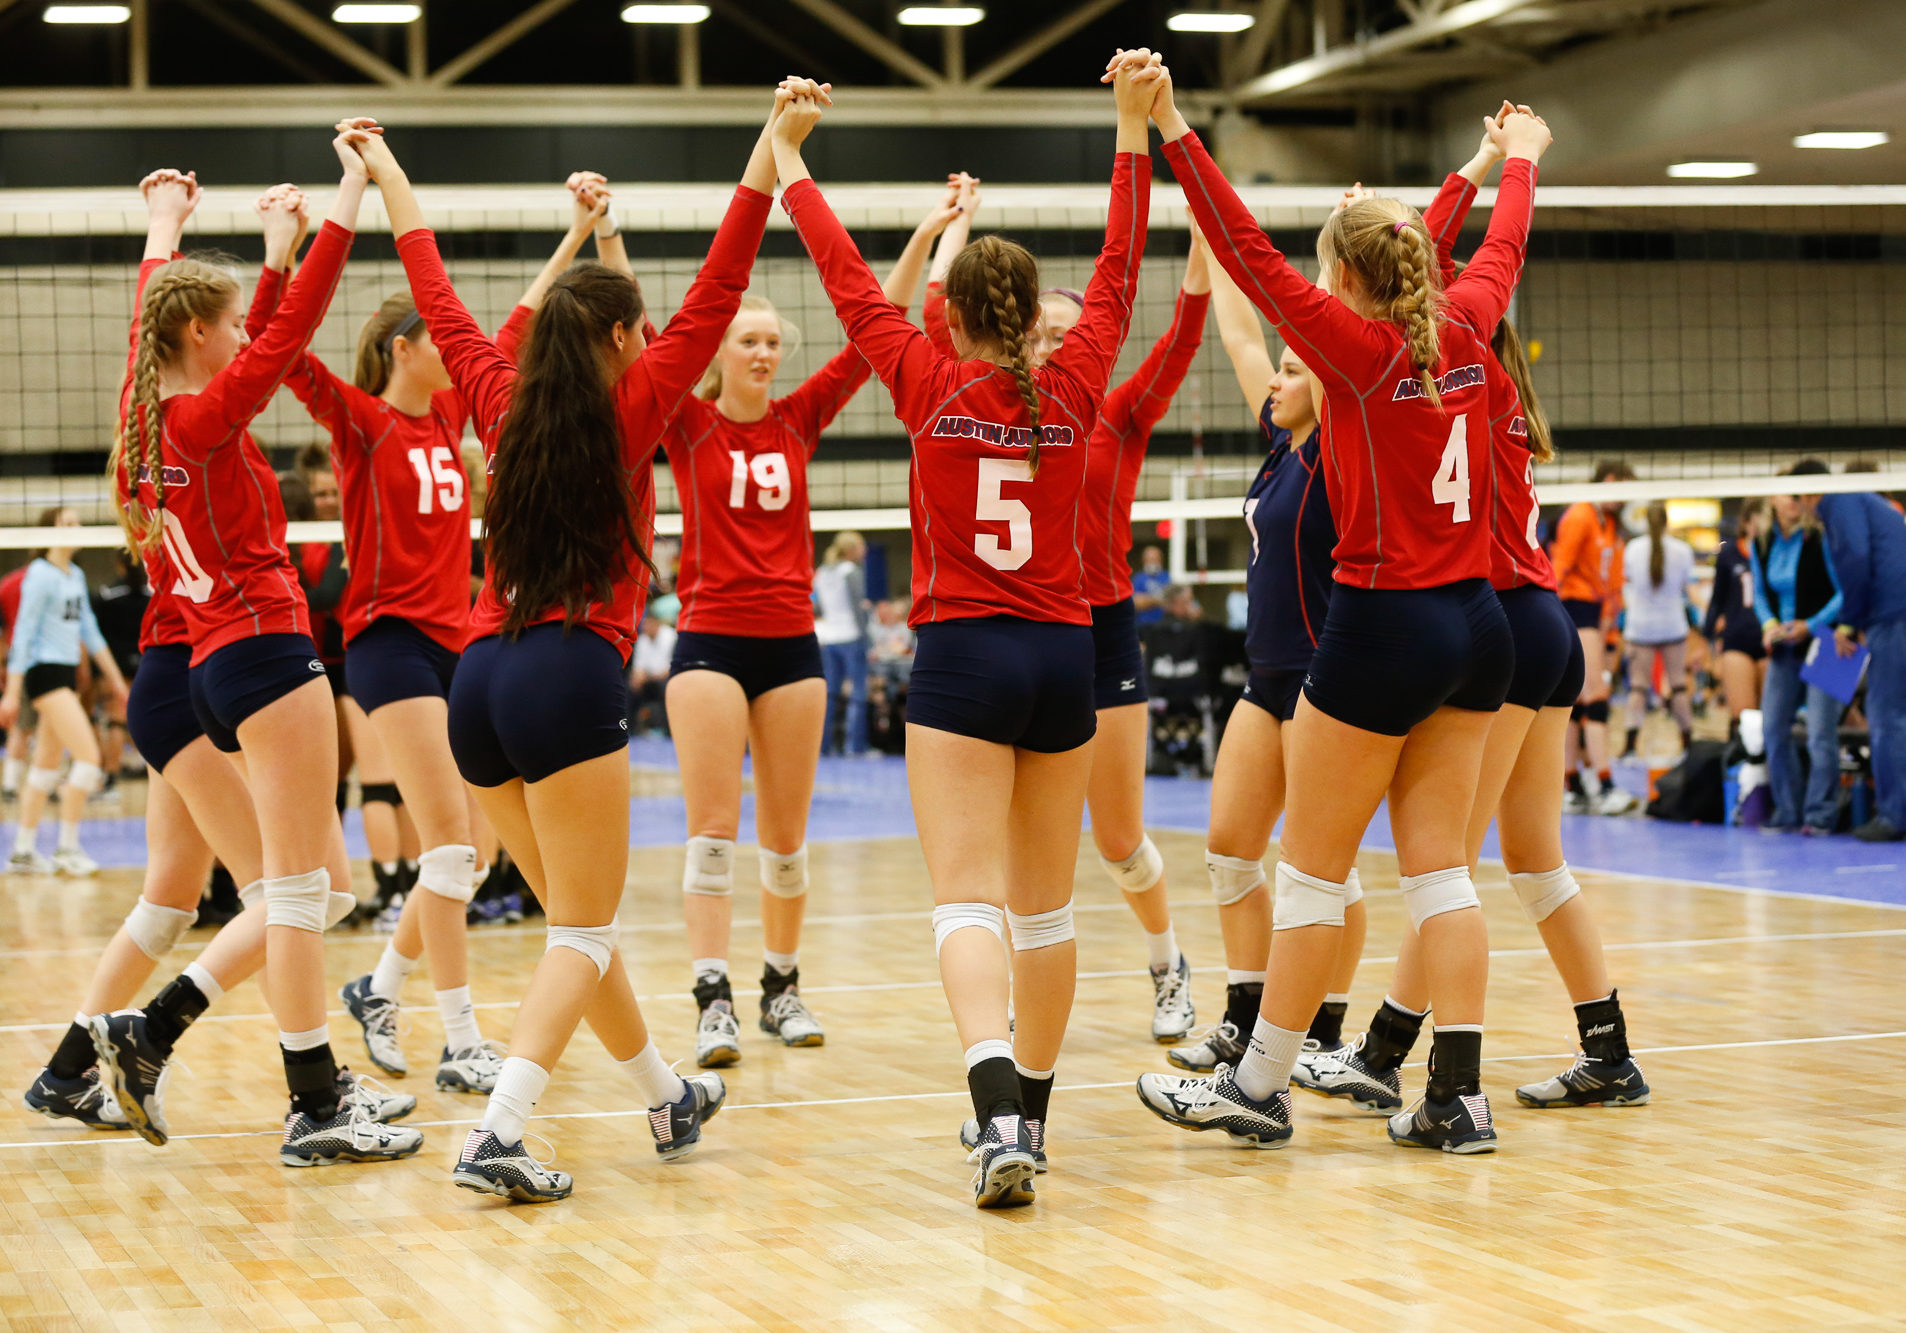 Austin Juniors Volleyball competes at the Lone Star Classic Volleyball Tournament in Dallas, Texas on April 23, 2016. (Photo by/Sharon Ellman)